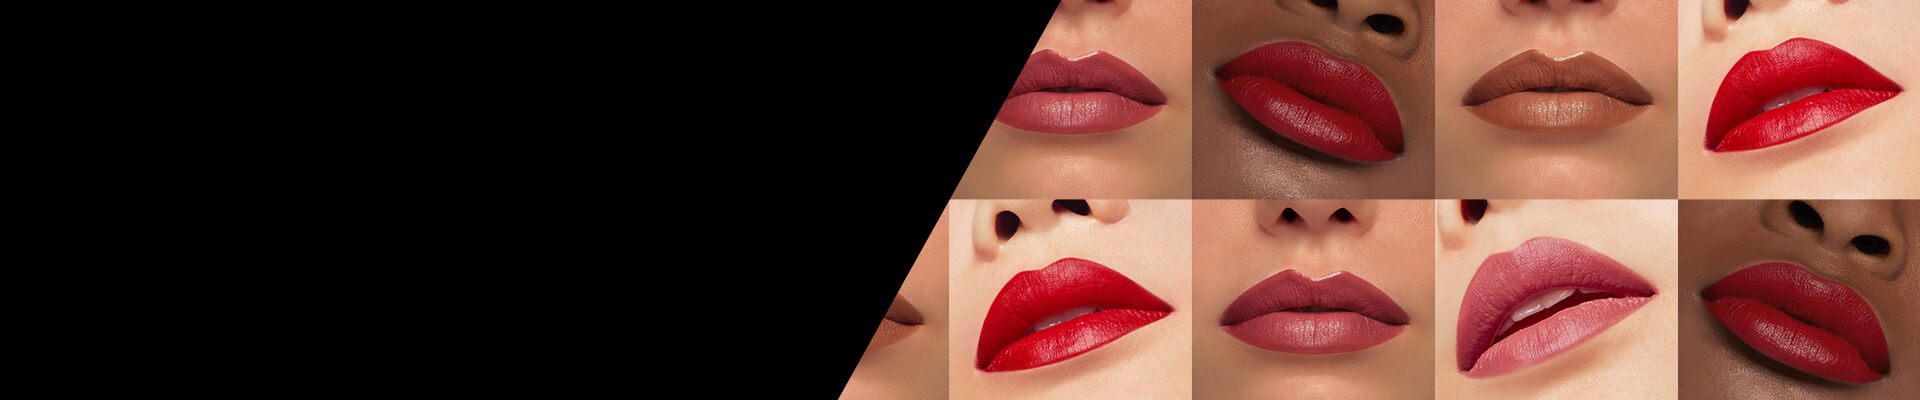 Treat yourself to a new pout